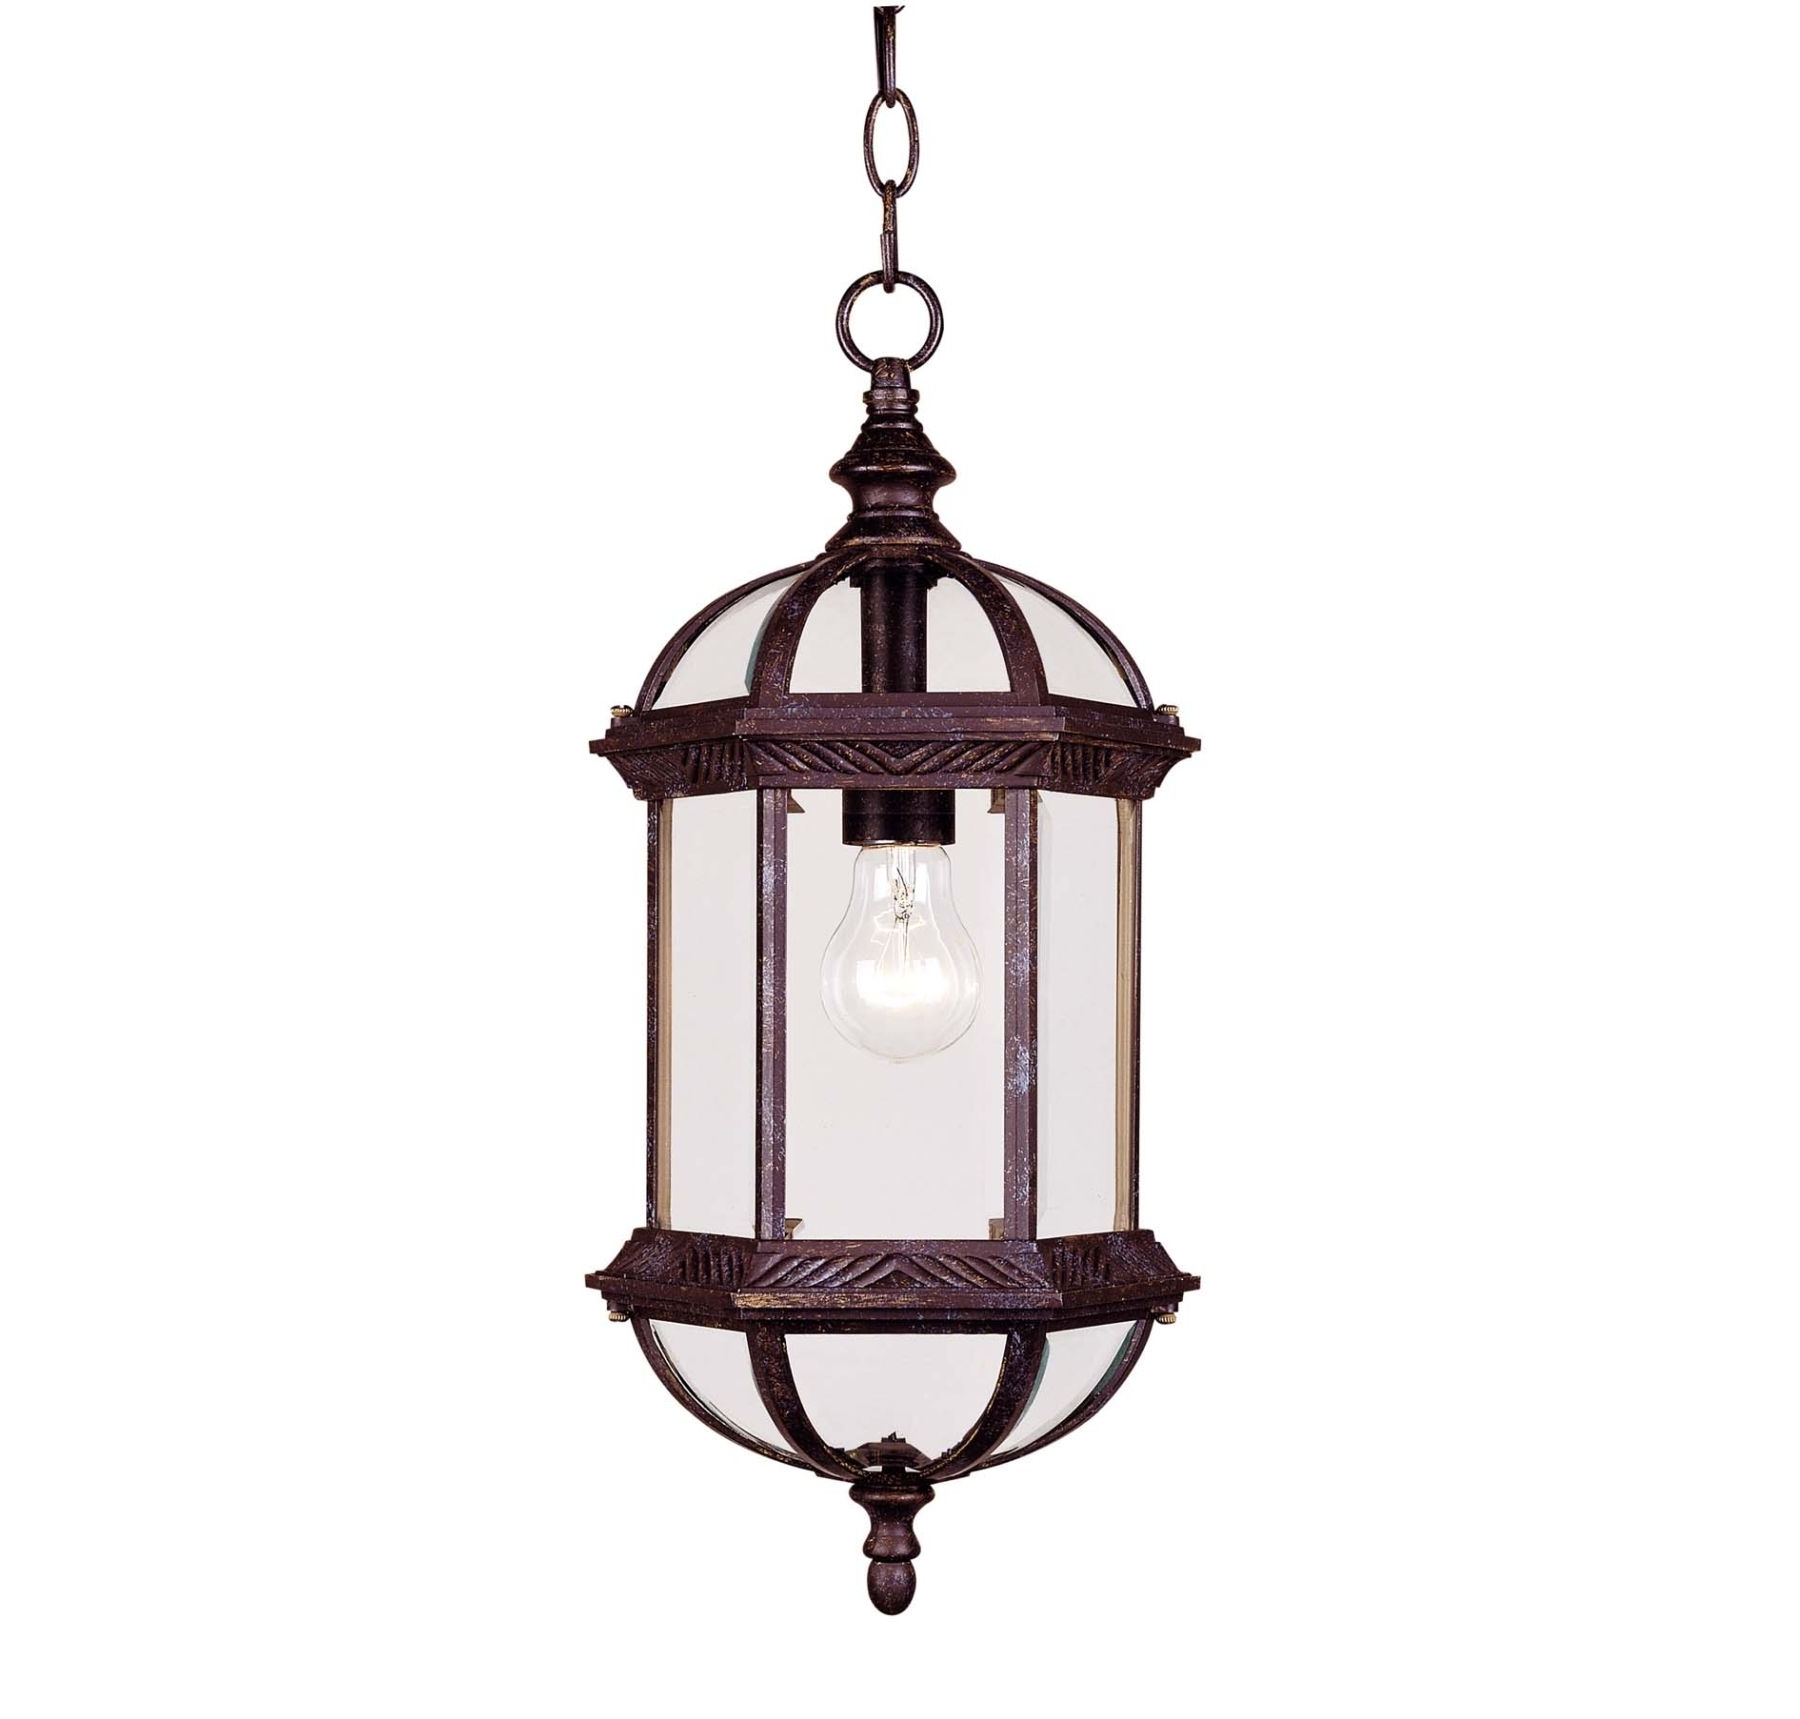 Widely Used Outdoor Pole Lanterns Pertaining To Outdoor Light : Glamorous Rustic Outdoor Pole Lighting , Rustic (View 19 of 20)